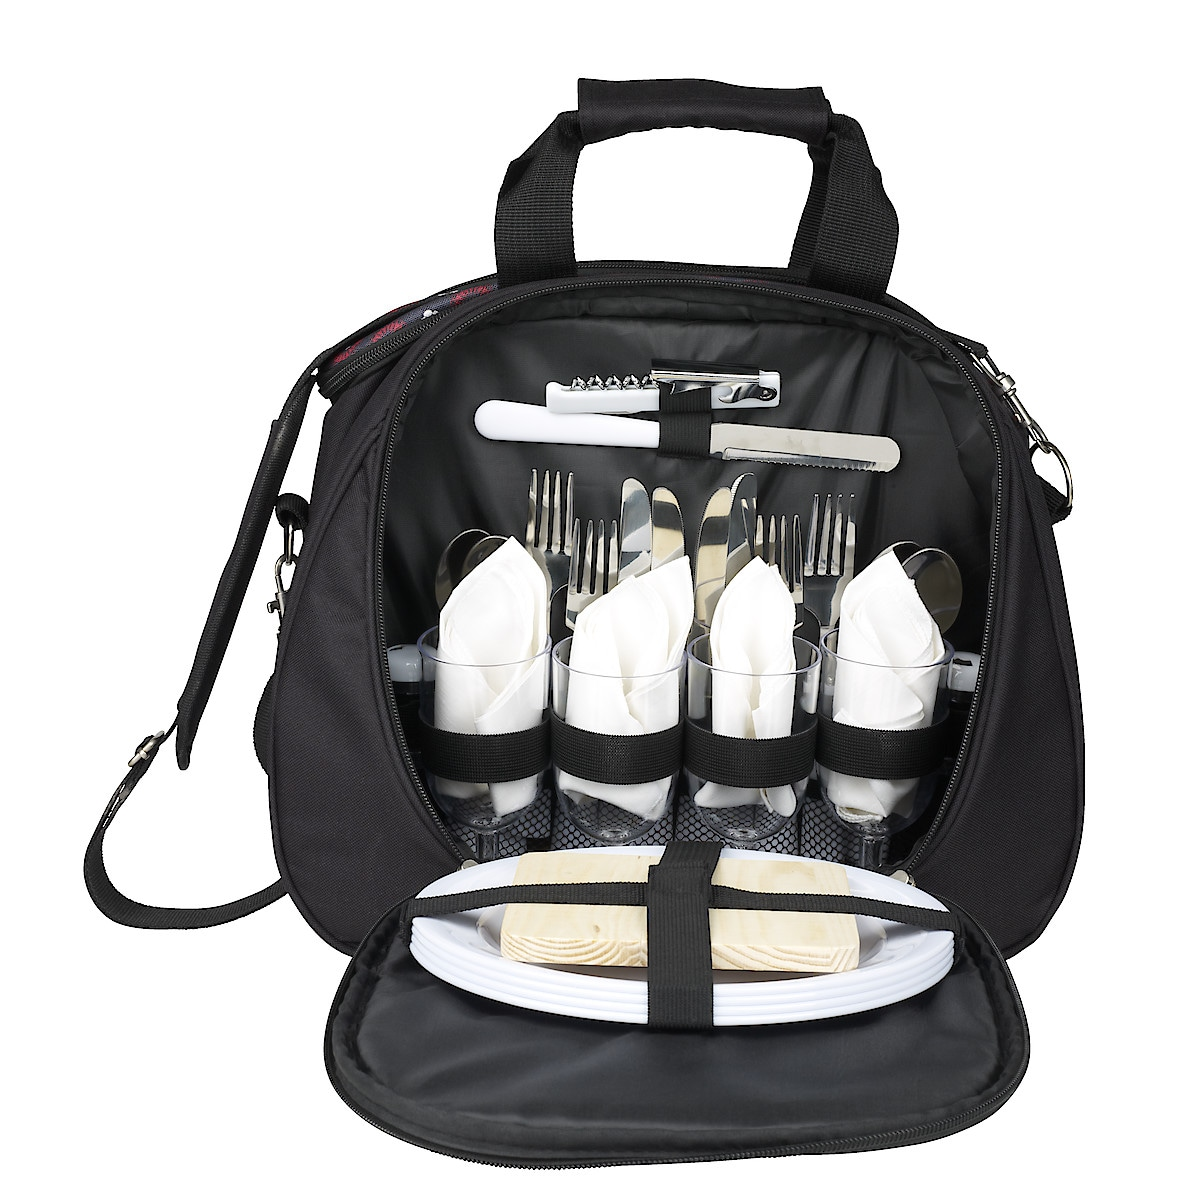 4-person picnic pack